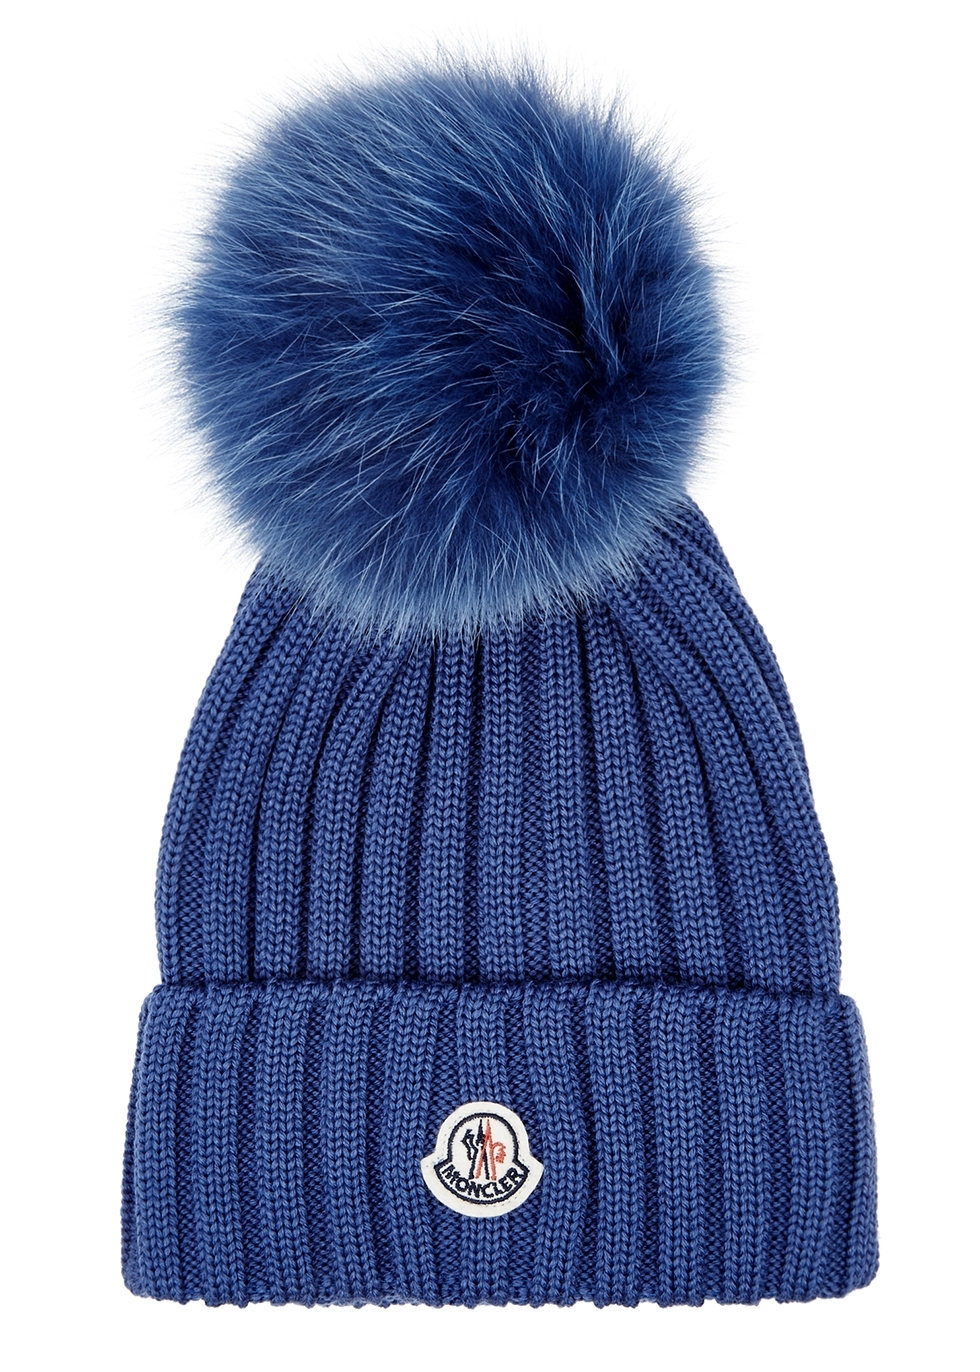 a5df90f2a11 Designer Beanies - Women's Luxury Hats - Harvey Nichols